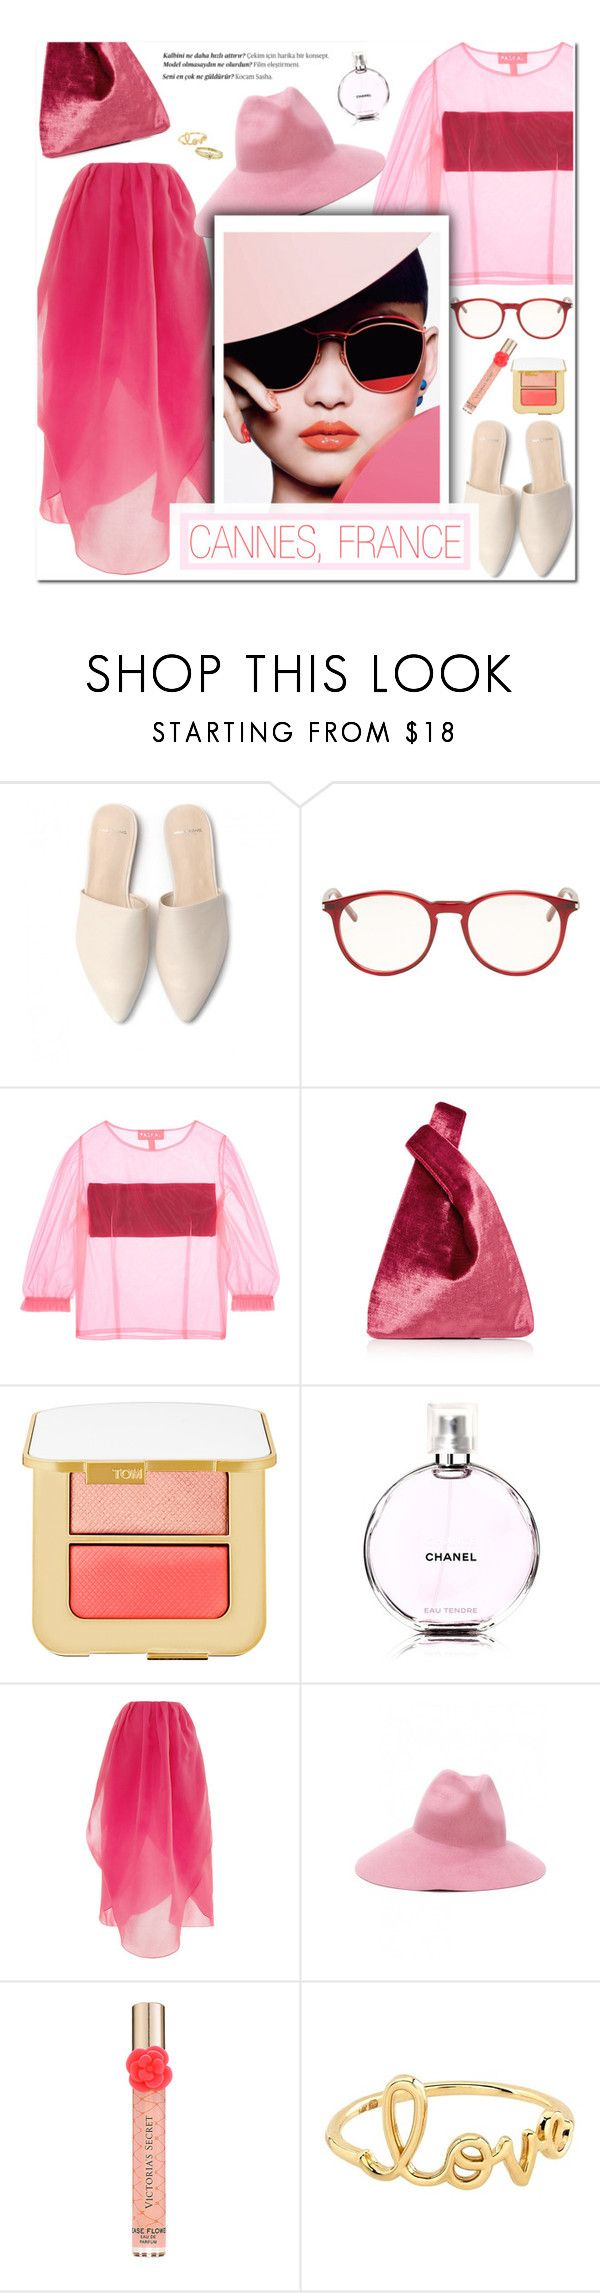 """How to Style an All Pink Monochromatic Outfit with Cream-Colored Mules and Coral Lipstick"" by outfitsfortravel ❤ liked on Polyvore featuring Yves Saint Laurent, Paskal, Hayward, Tom Ford, Chanel, Isa Arfen, Gucci, Victoria's Secret, Balmain and Sydney Evan"